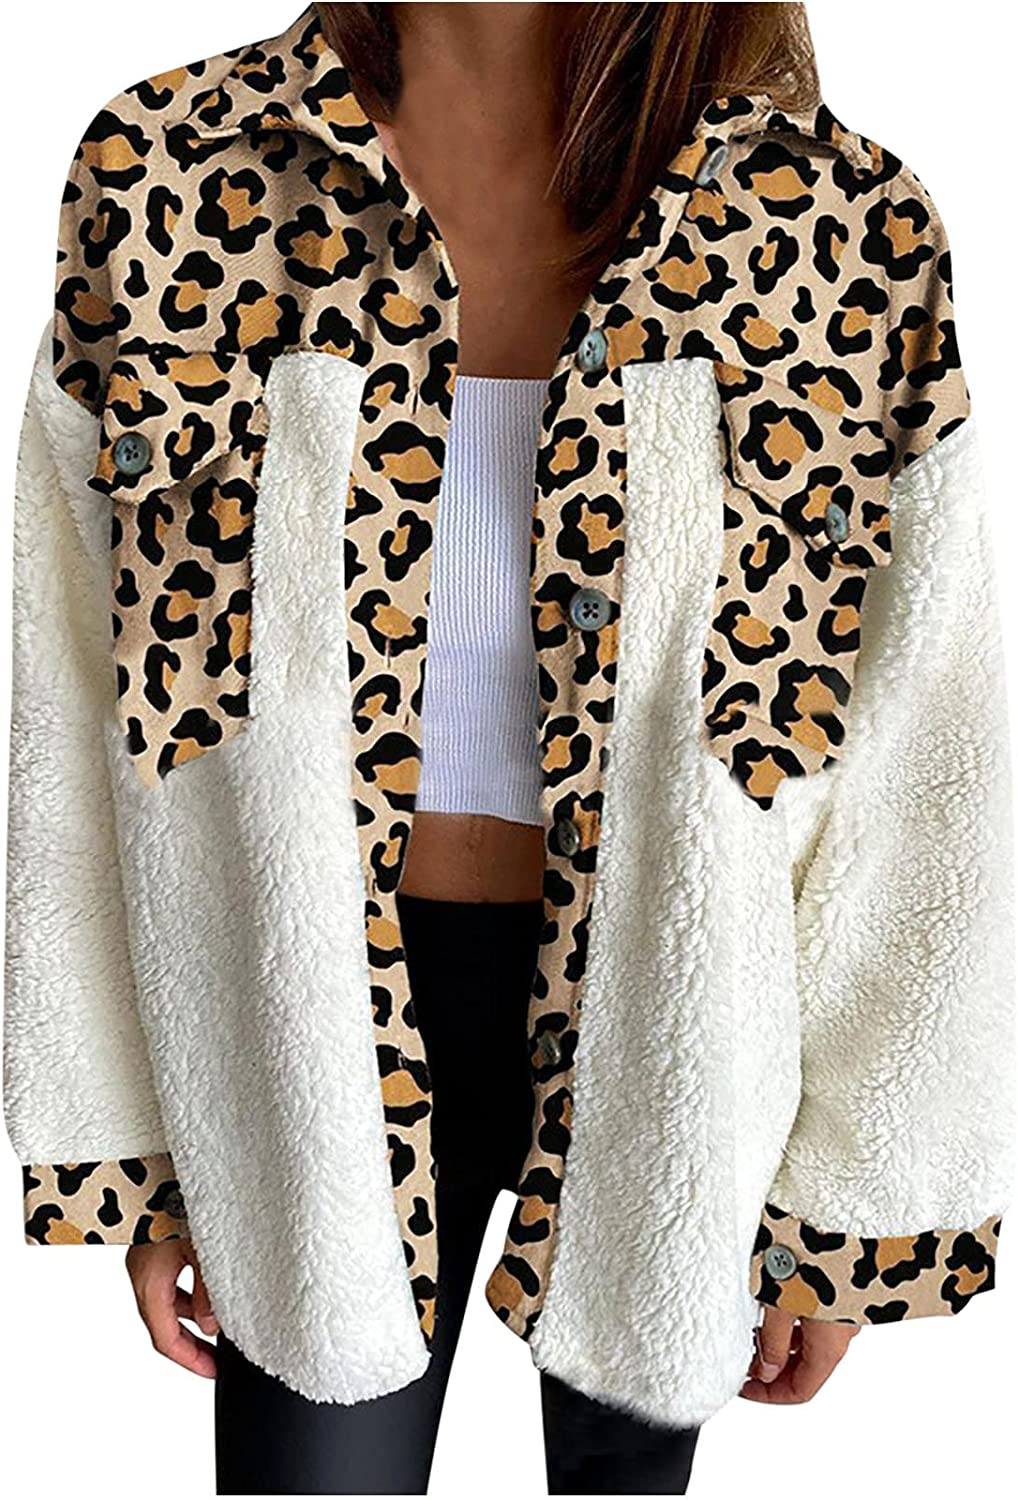 Women's Fashion Jacket Leopard Patchwork Coat Long Sleeve Shirt Button up Tunic Tops Casual Plus Outerwear with Pocket